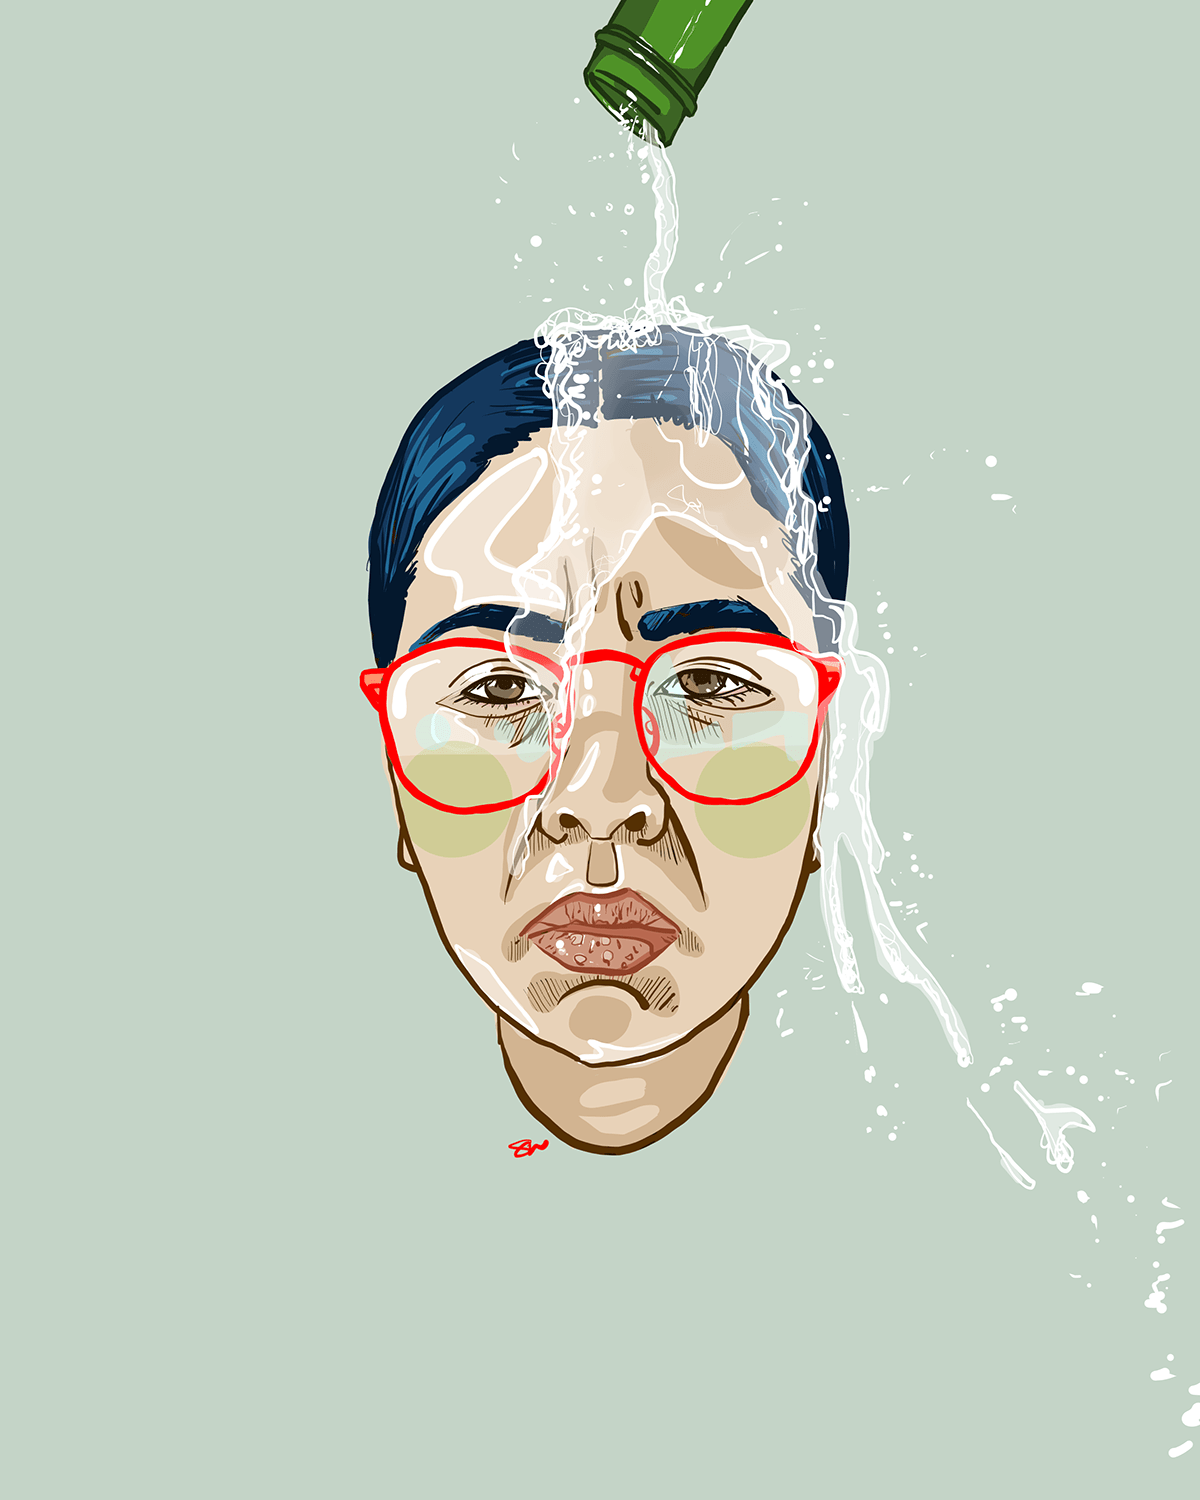 Self Portrait of Vietnamese American woman with champagne being poured over her